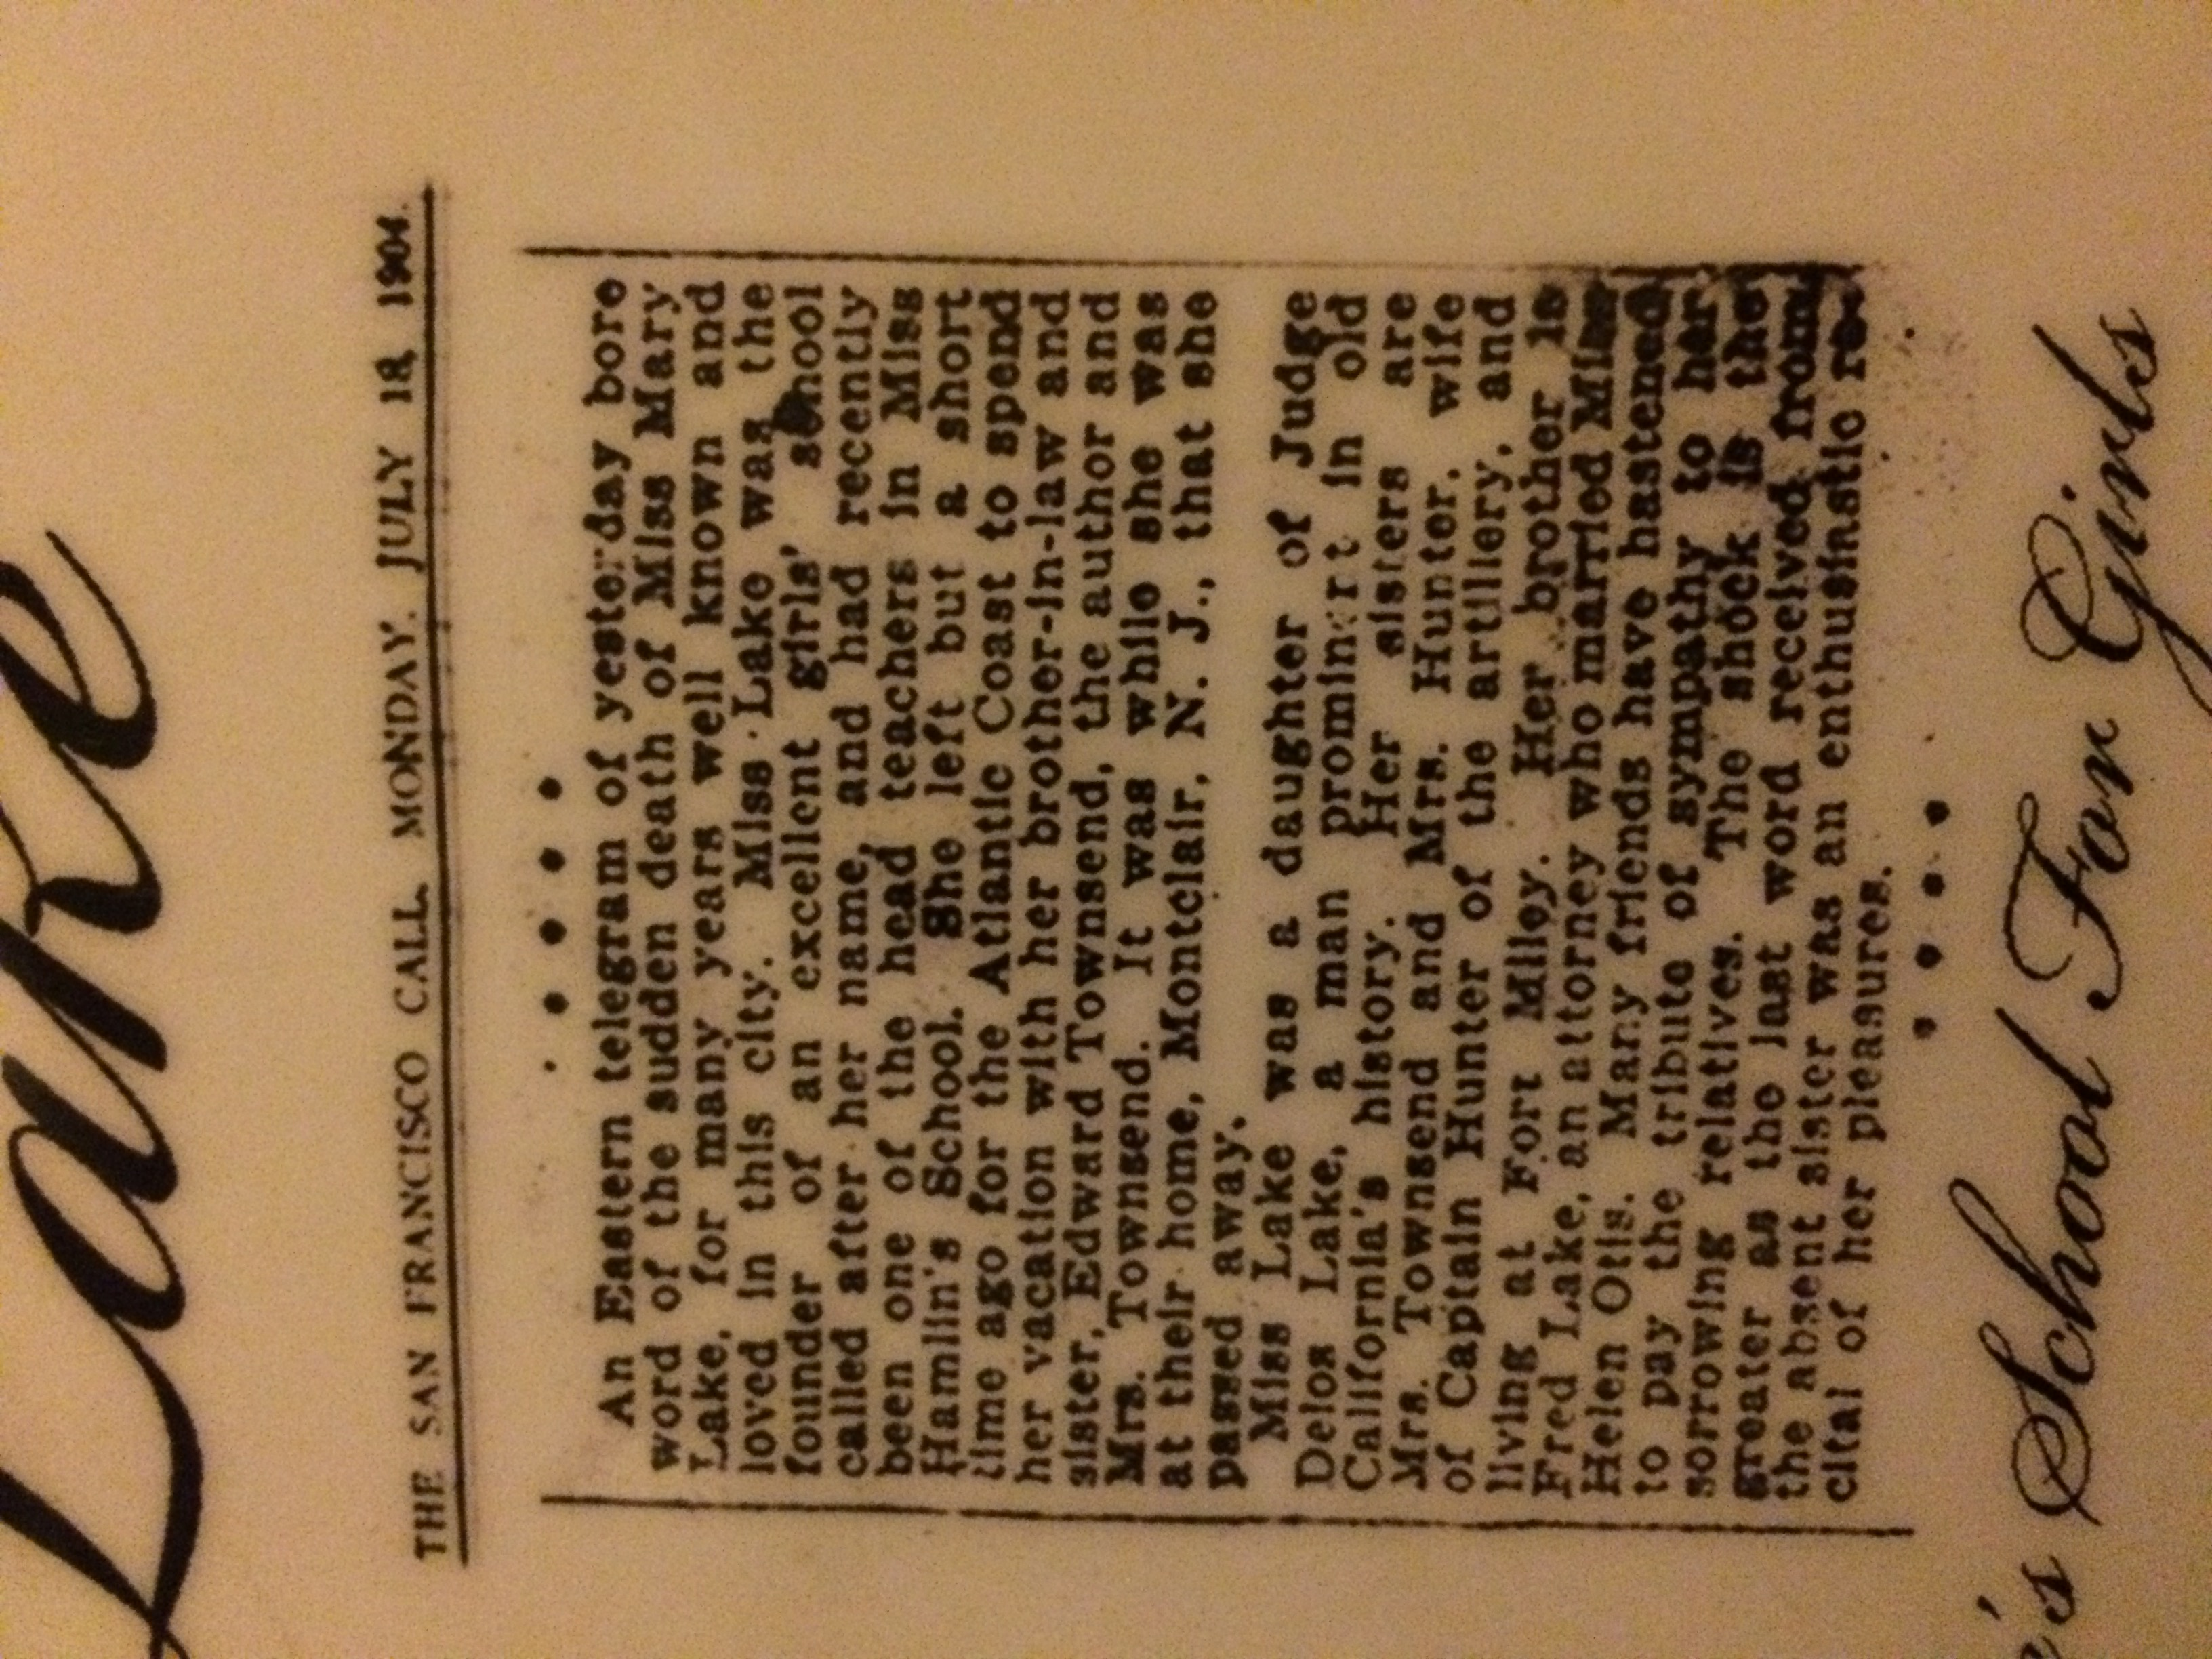 Uncategorized Archives - Page 46 of 63 - Rally